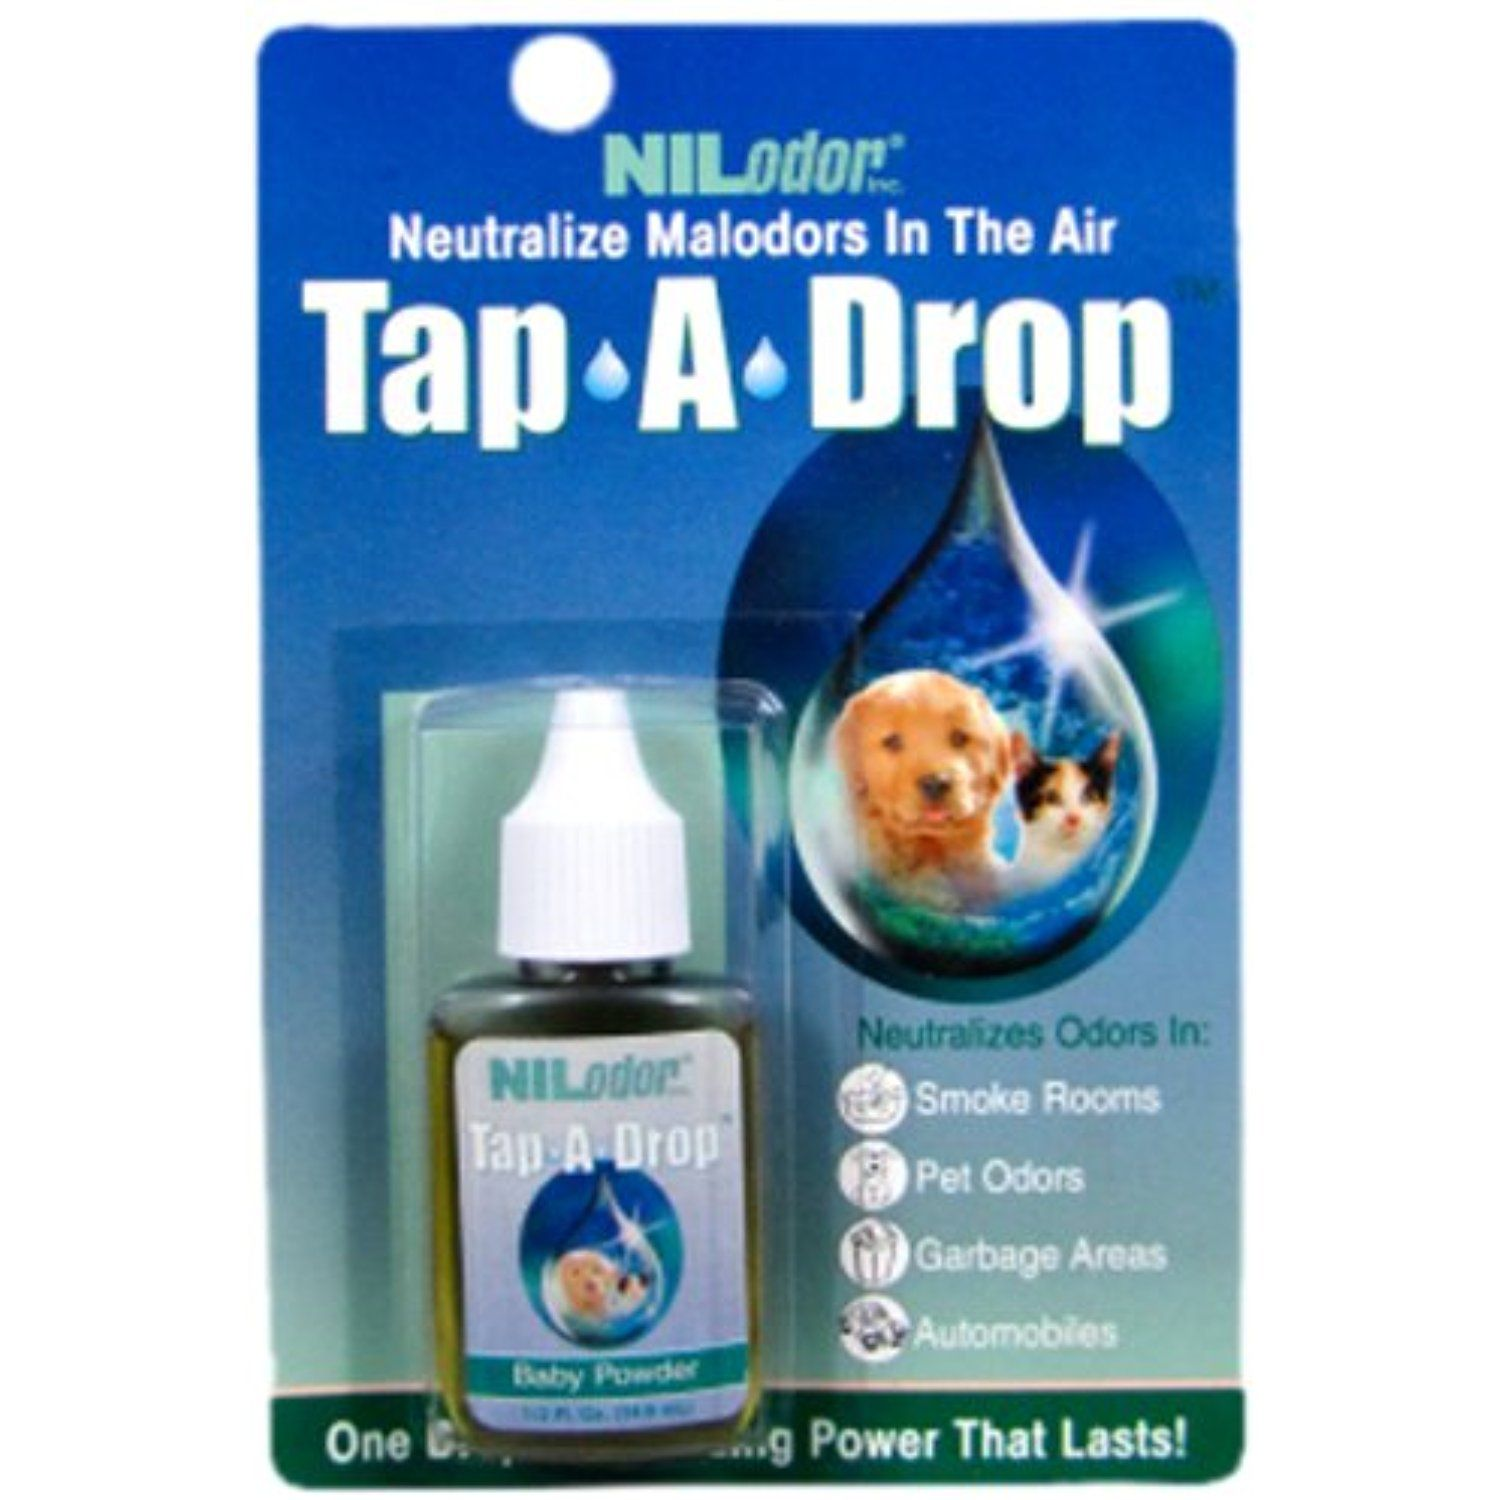 Nilodor Tap A Drop Baby Powder Read More Reviews Of The Product By Visiting The Link On The Image Th Dog Deodorizer Neutralize Odor Dog Grooming Supplies